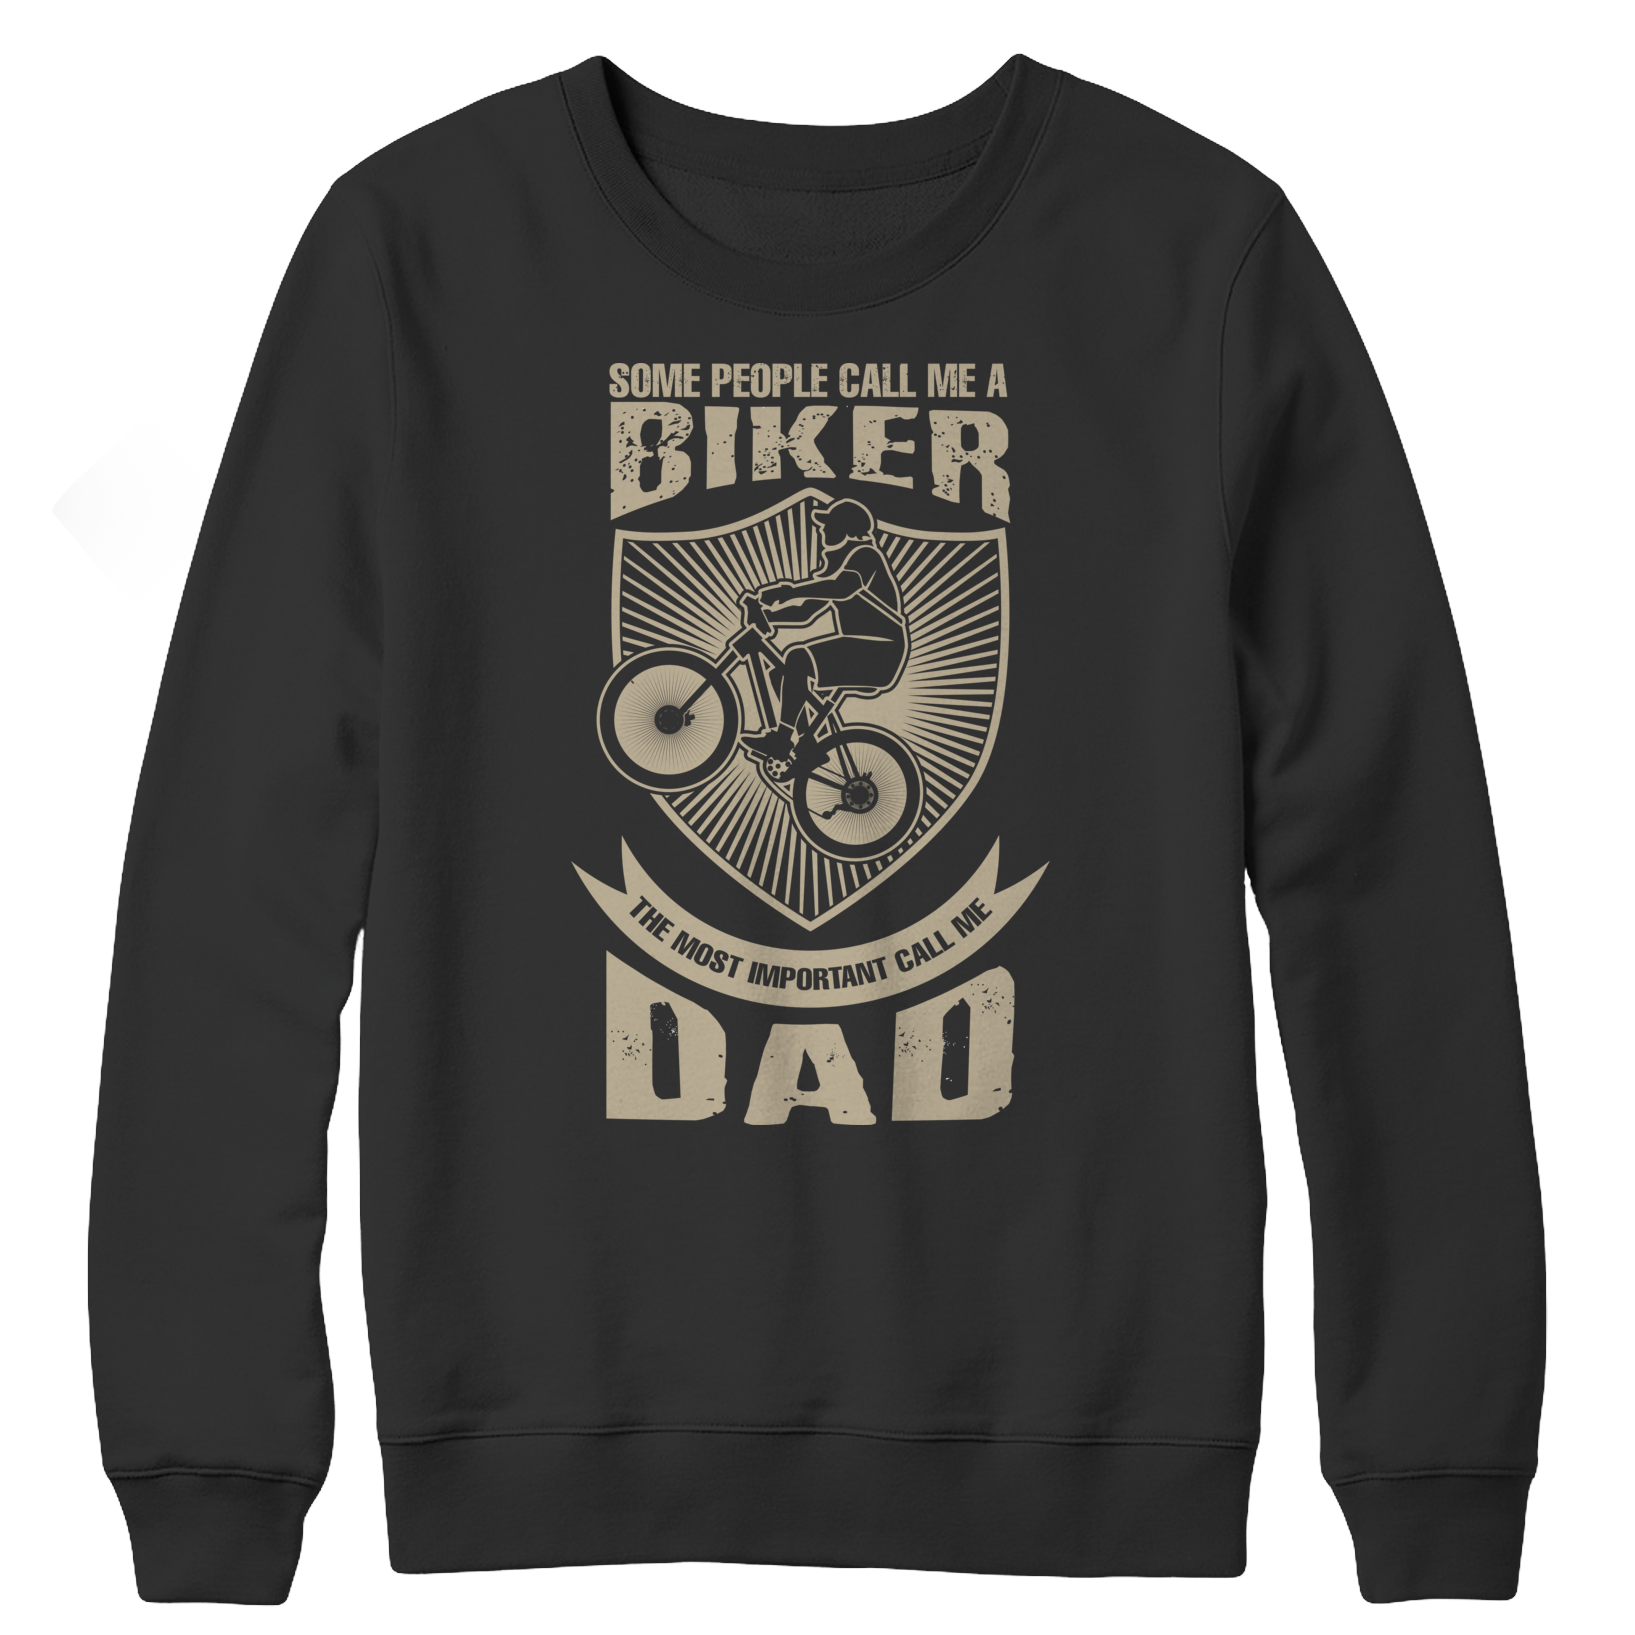 Limited Edition - Some call me a Biker But the Most Important Ones Call Me Dad Crewneck Fleece Shirt